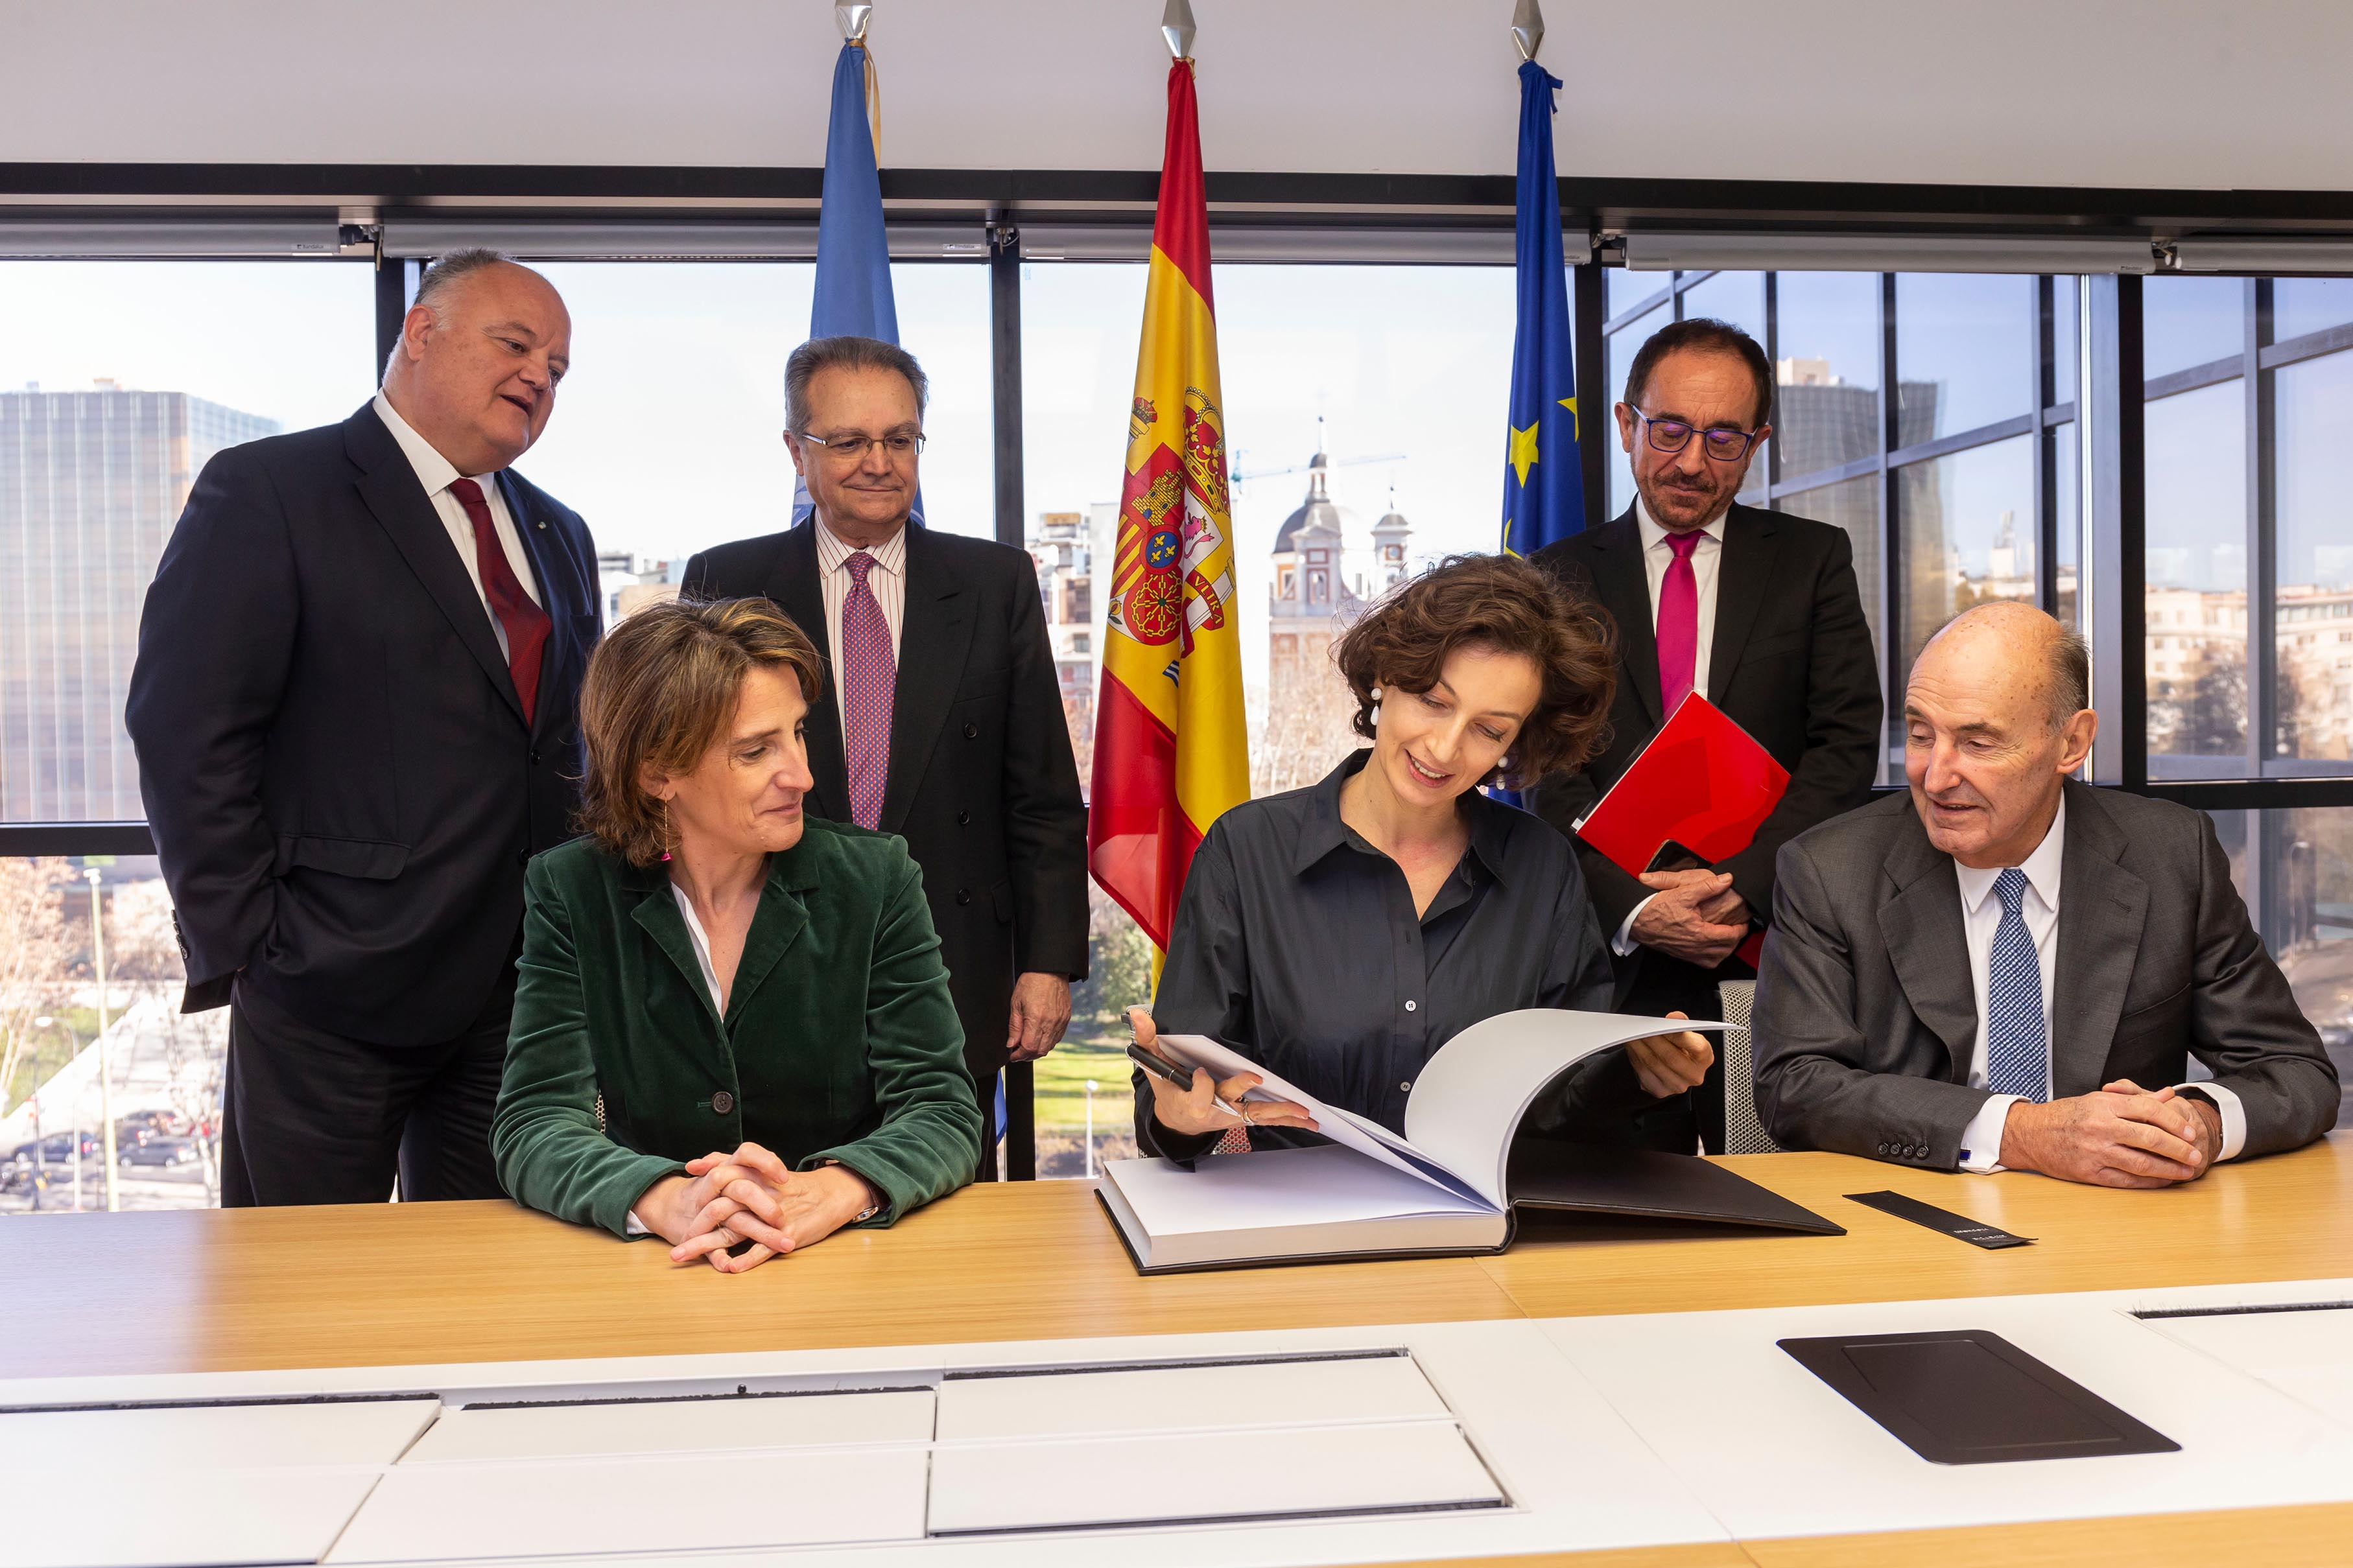 Meeting of the Abertis Foundation with the Director General of UNESCO, Audrey Azoulay, and the Minister for Ecological Transition of Spain, Teresa Ribera, in Madrid